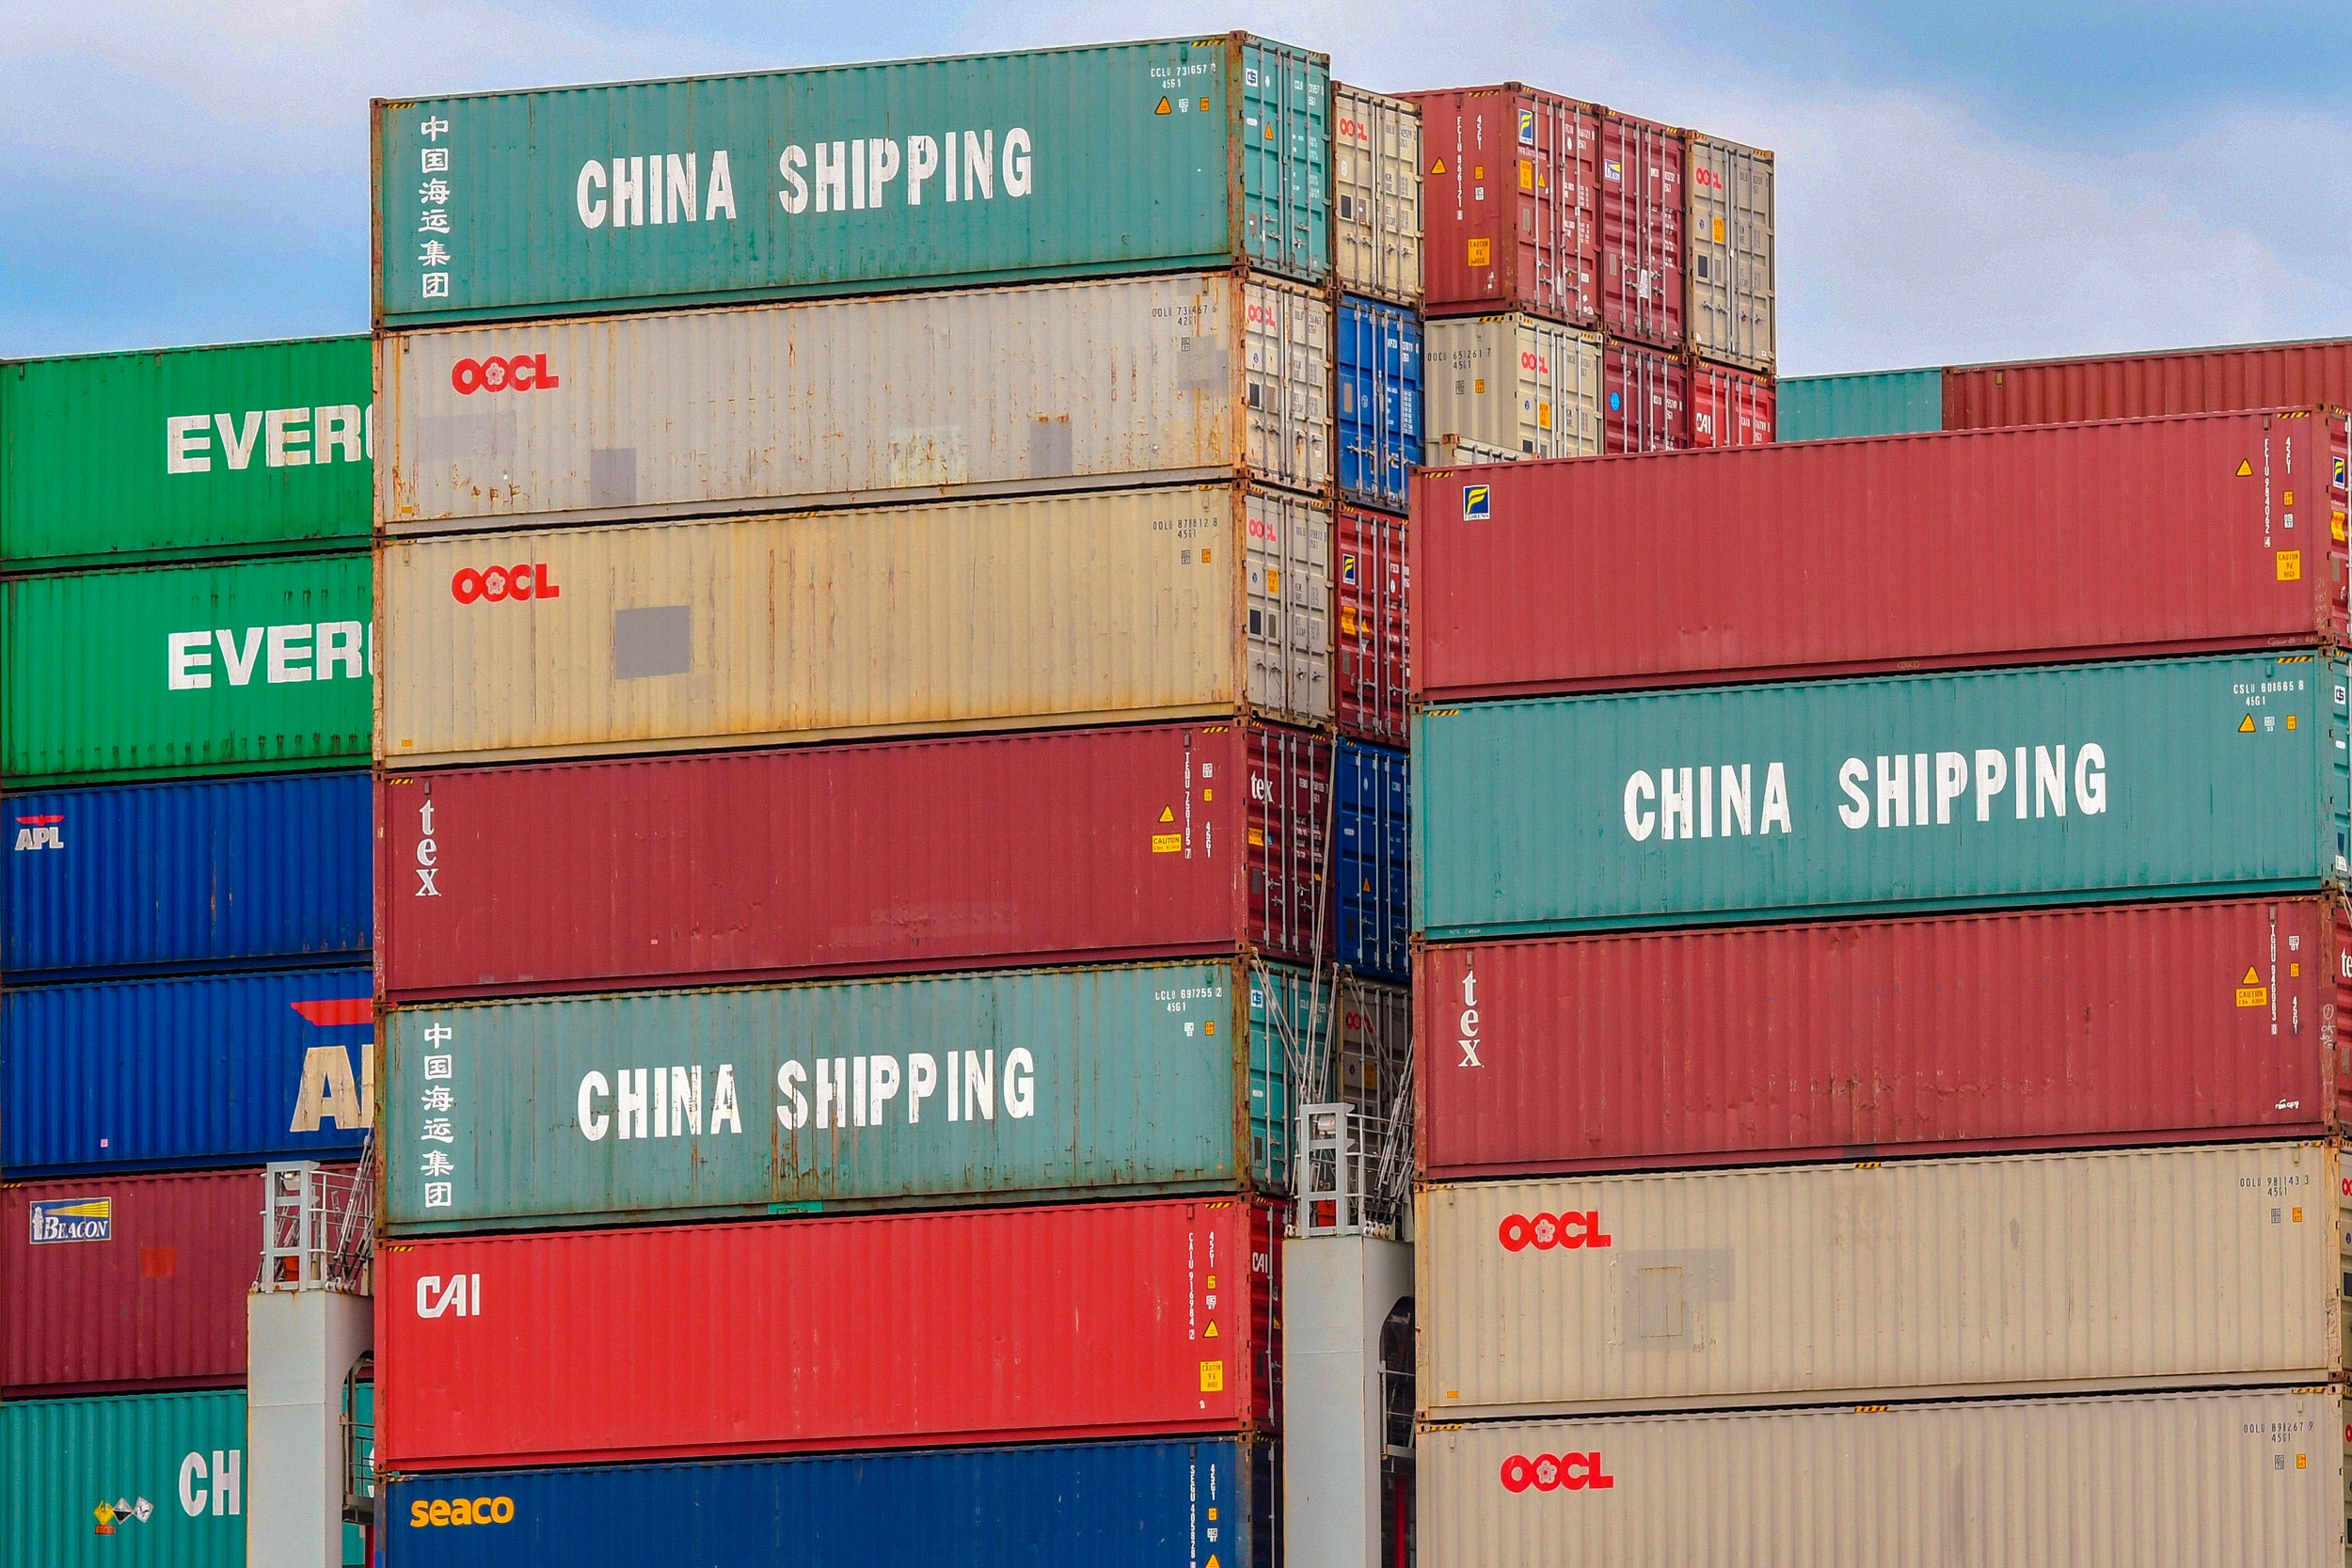 Shipping containers with China stamped on them.